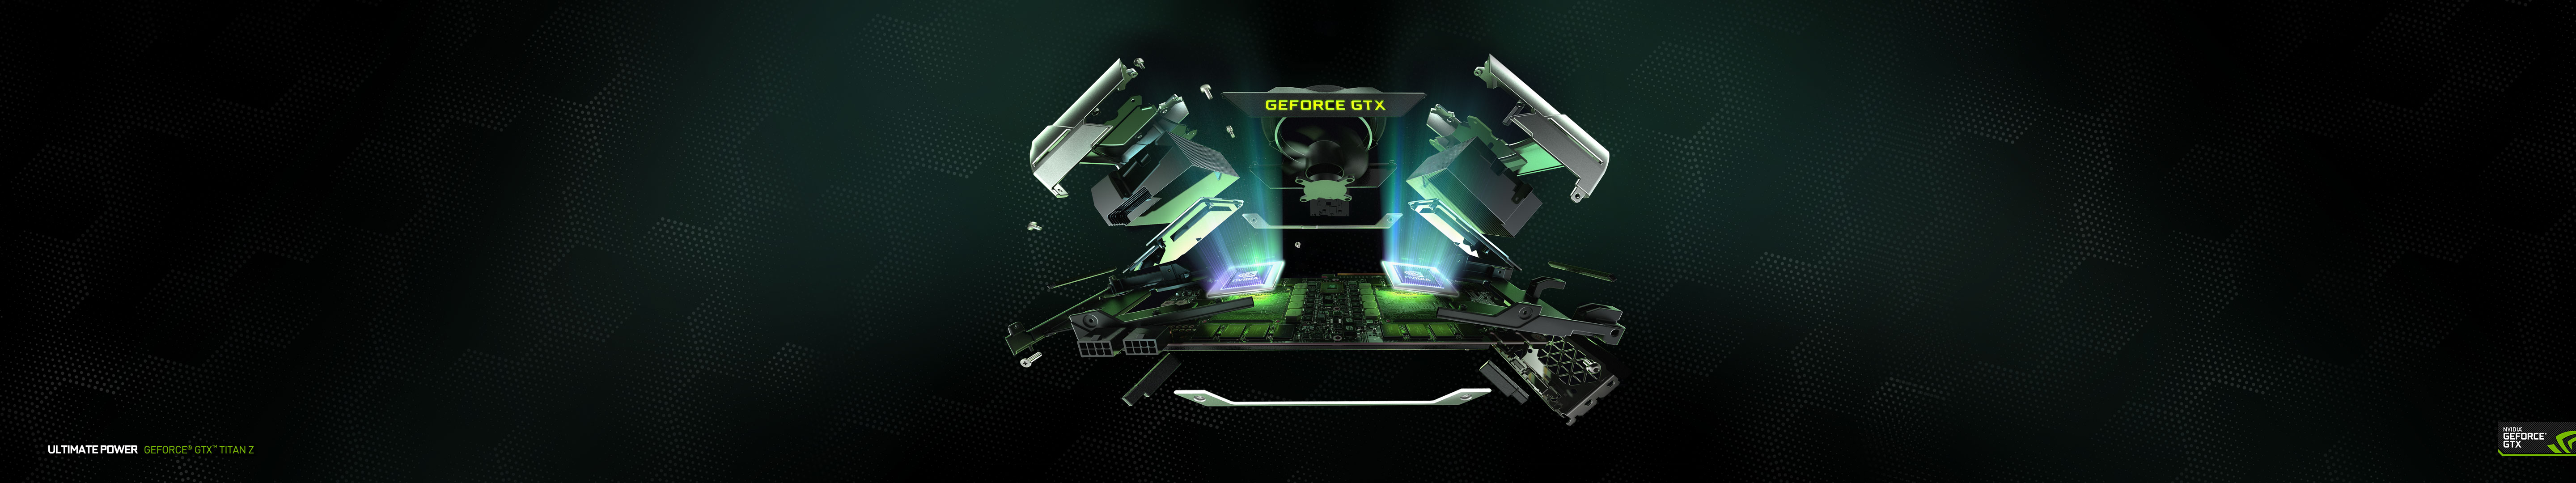 how to pay for geforce now